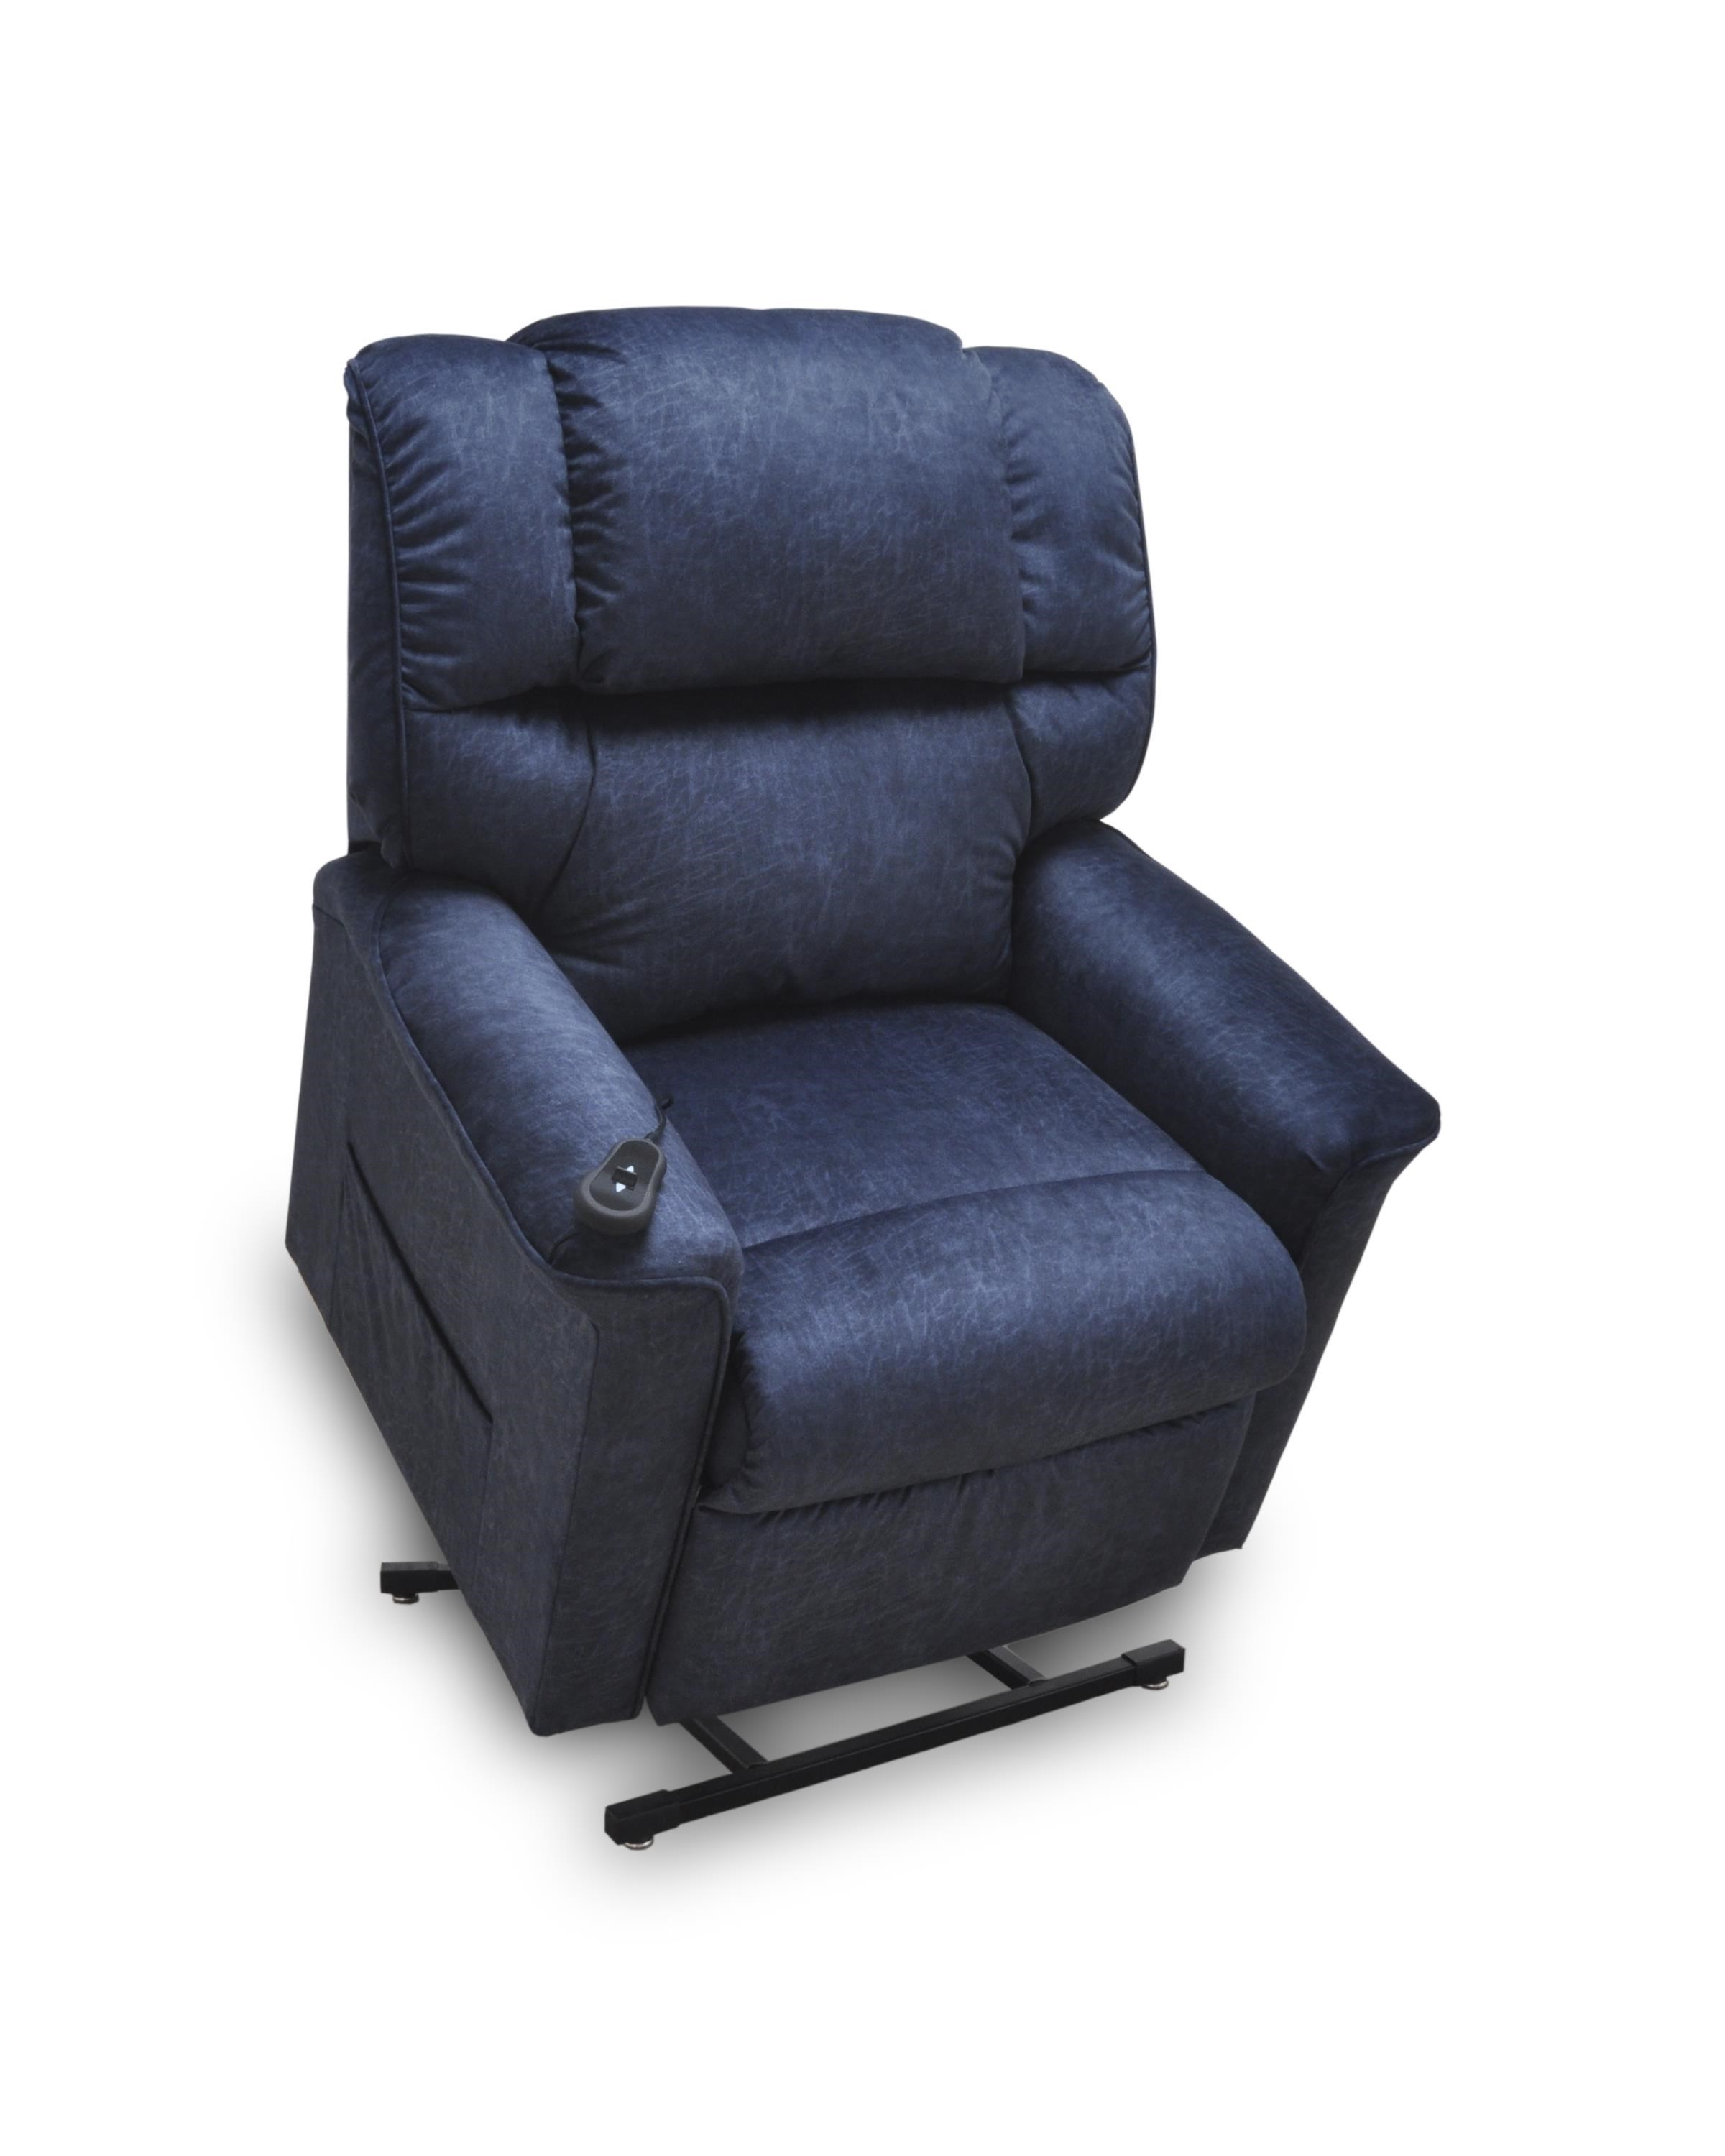 Franklin Lift and Power Recliners Oscar Lift Chair - Great American Home Store - Lift Recliner  sc 1 st  Great American Home Store & Franklin Lift and Power Recliners Oscar Lift Chair - Great ... islam-shia.org